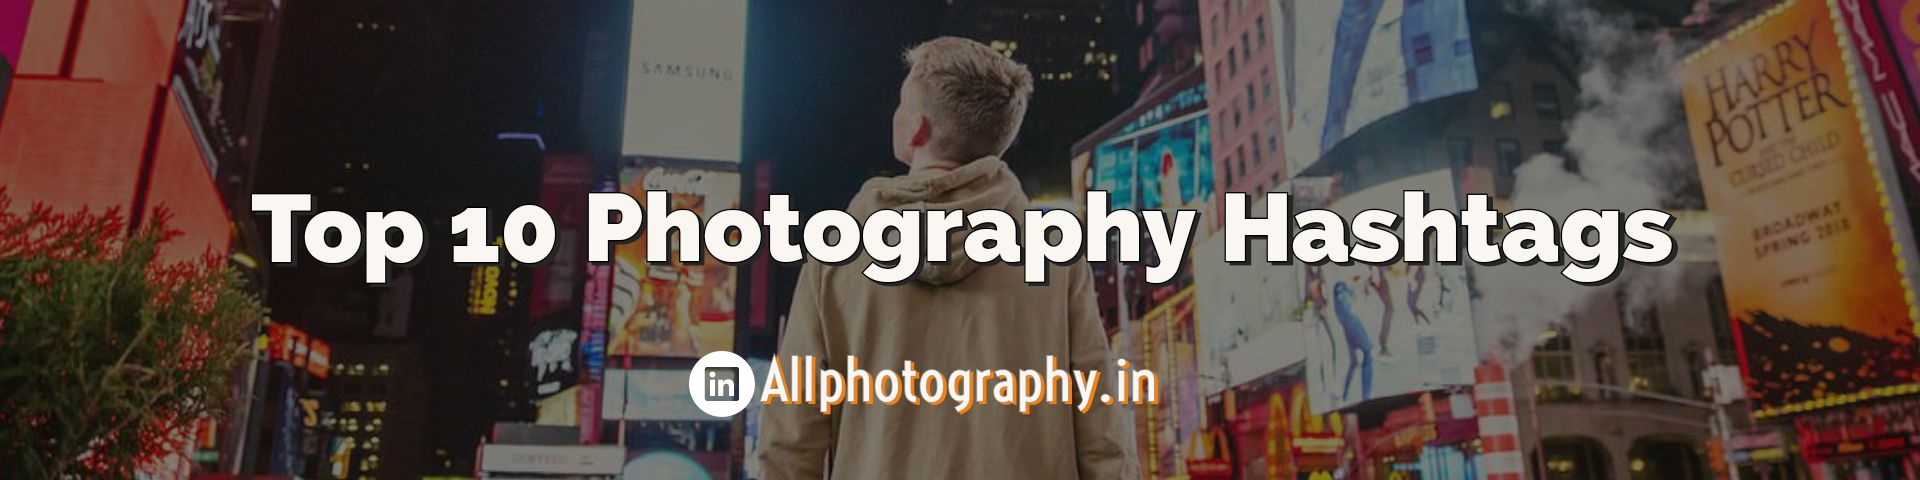 Top 10 Photography Hashtags